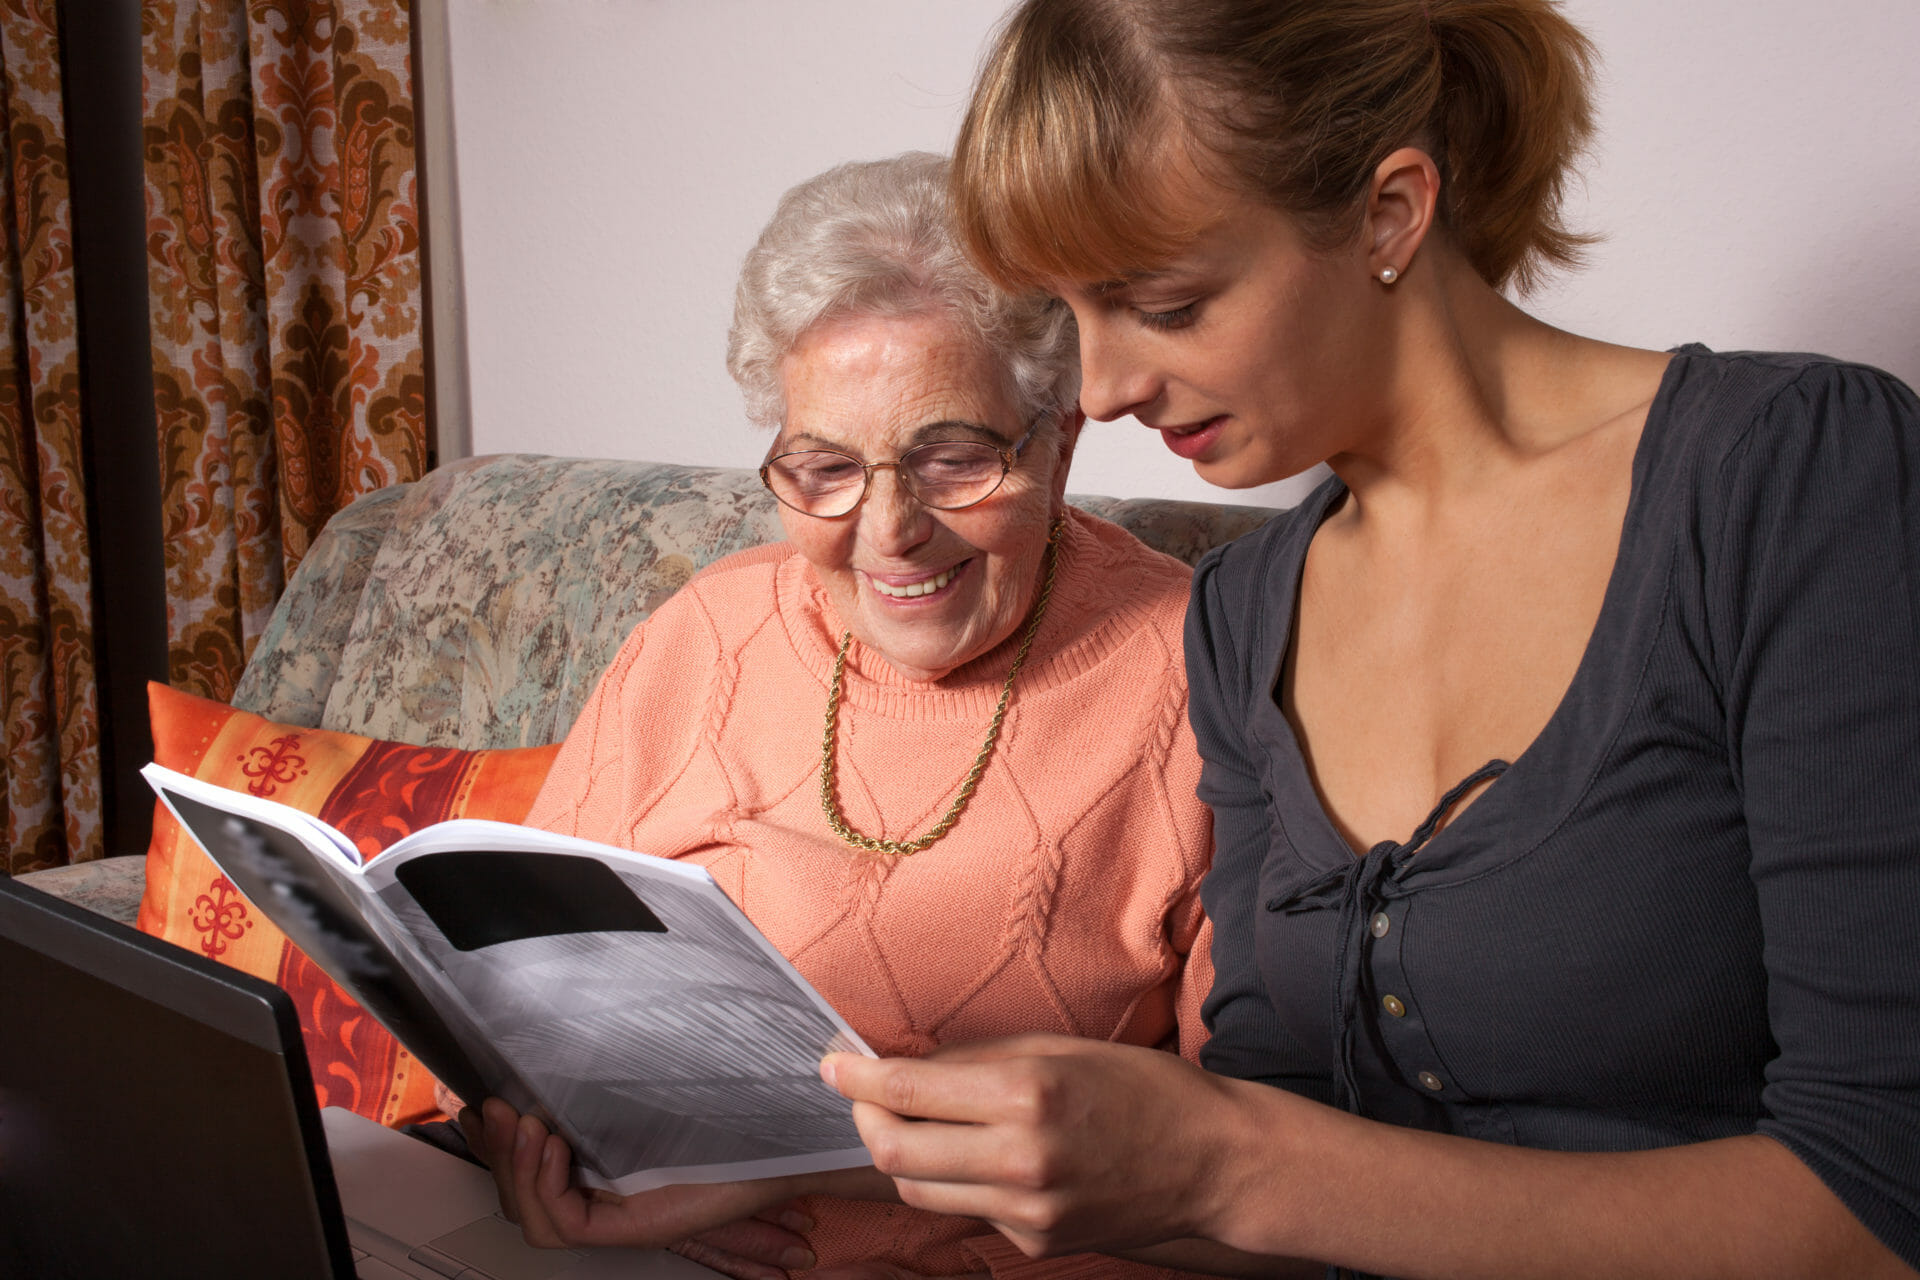 elderly lady sitting next to young woman looking at a magazine